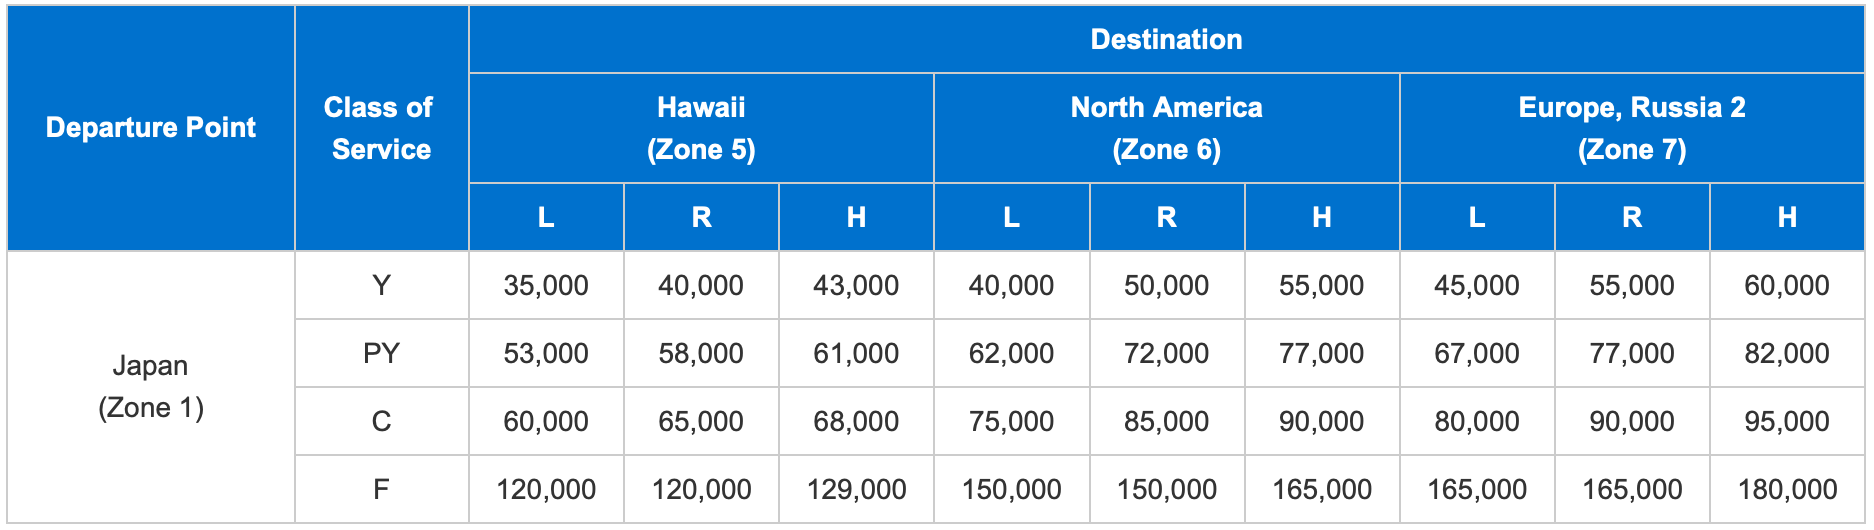 ANA Award Chart North America to Japan